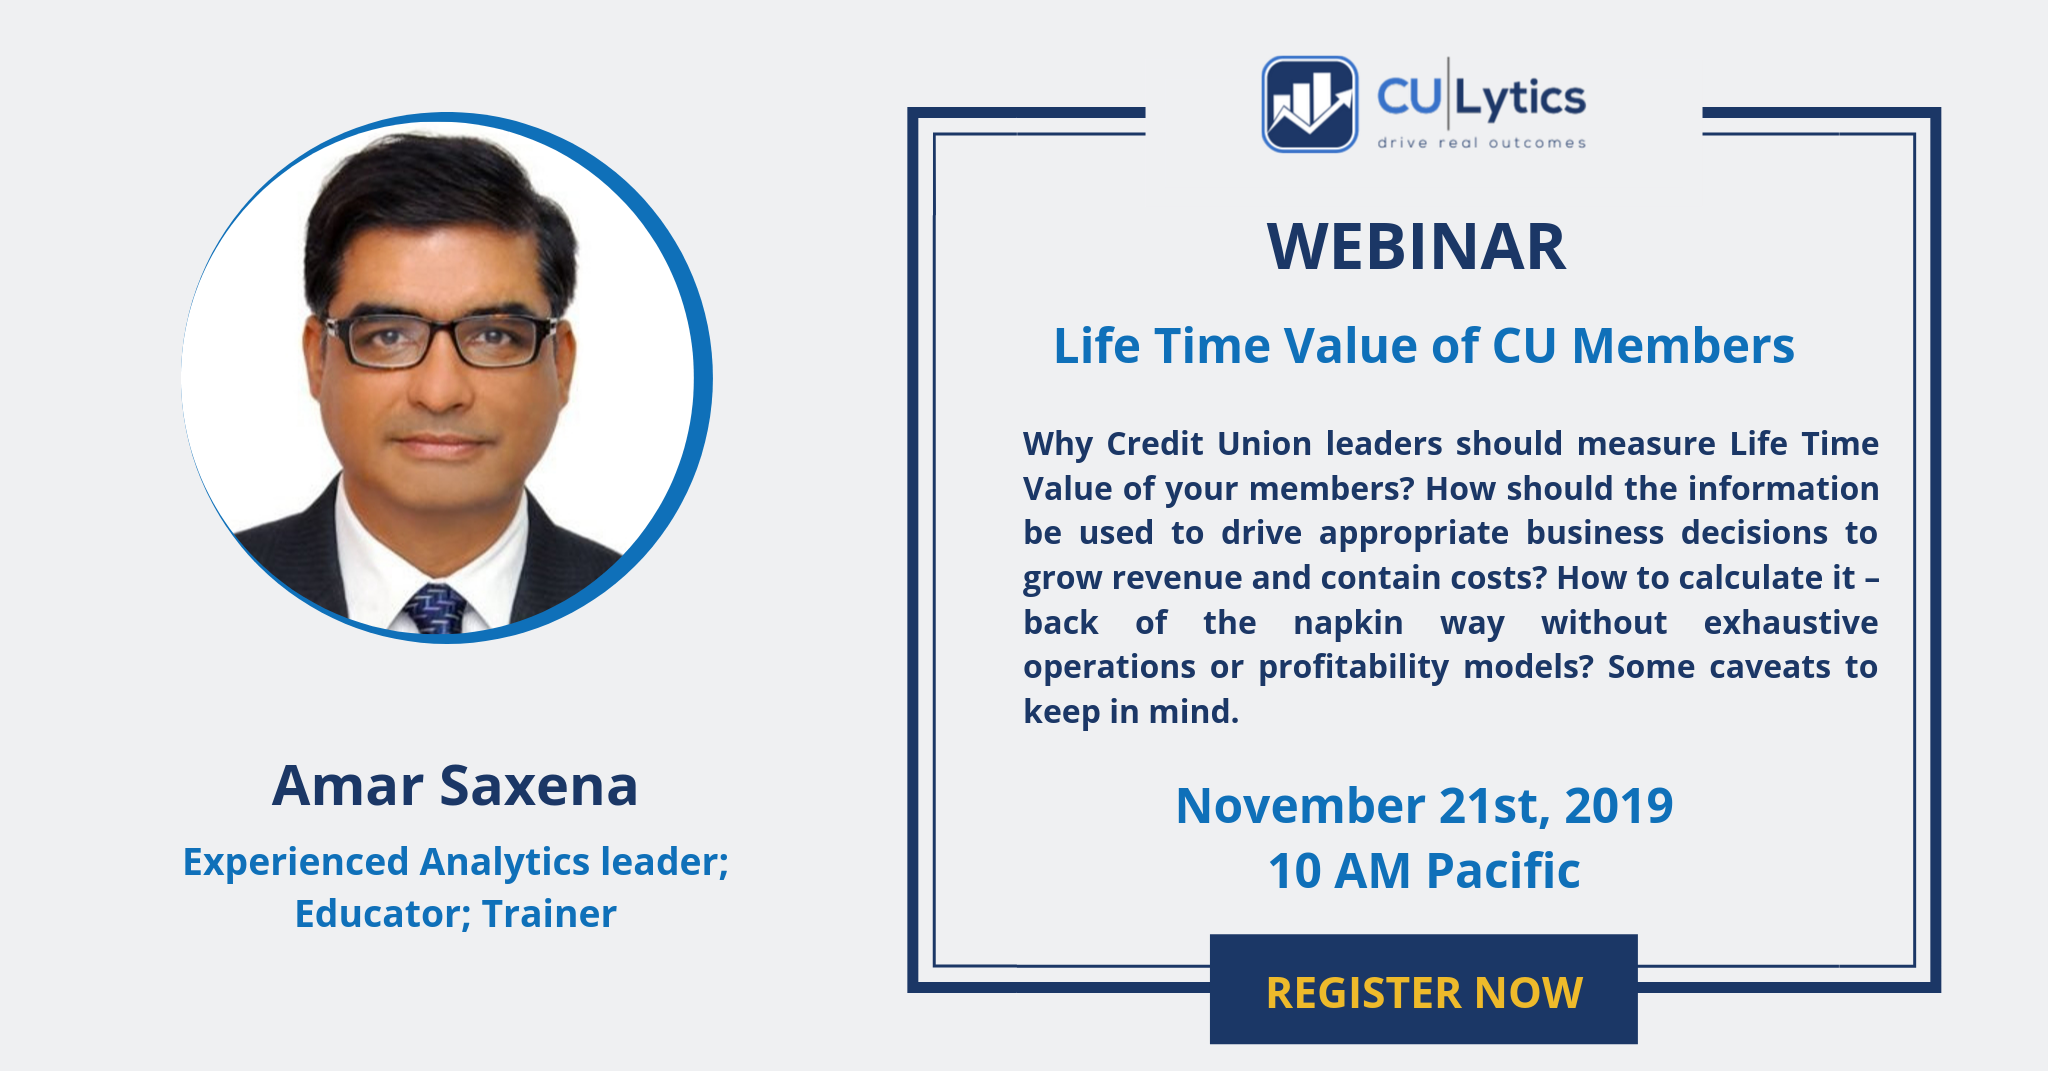 Webinar - Life Time Value of your members